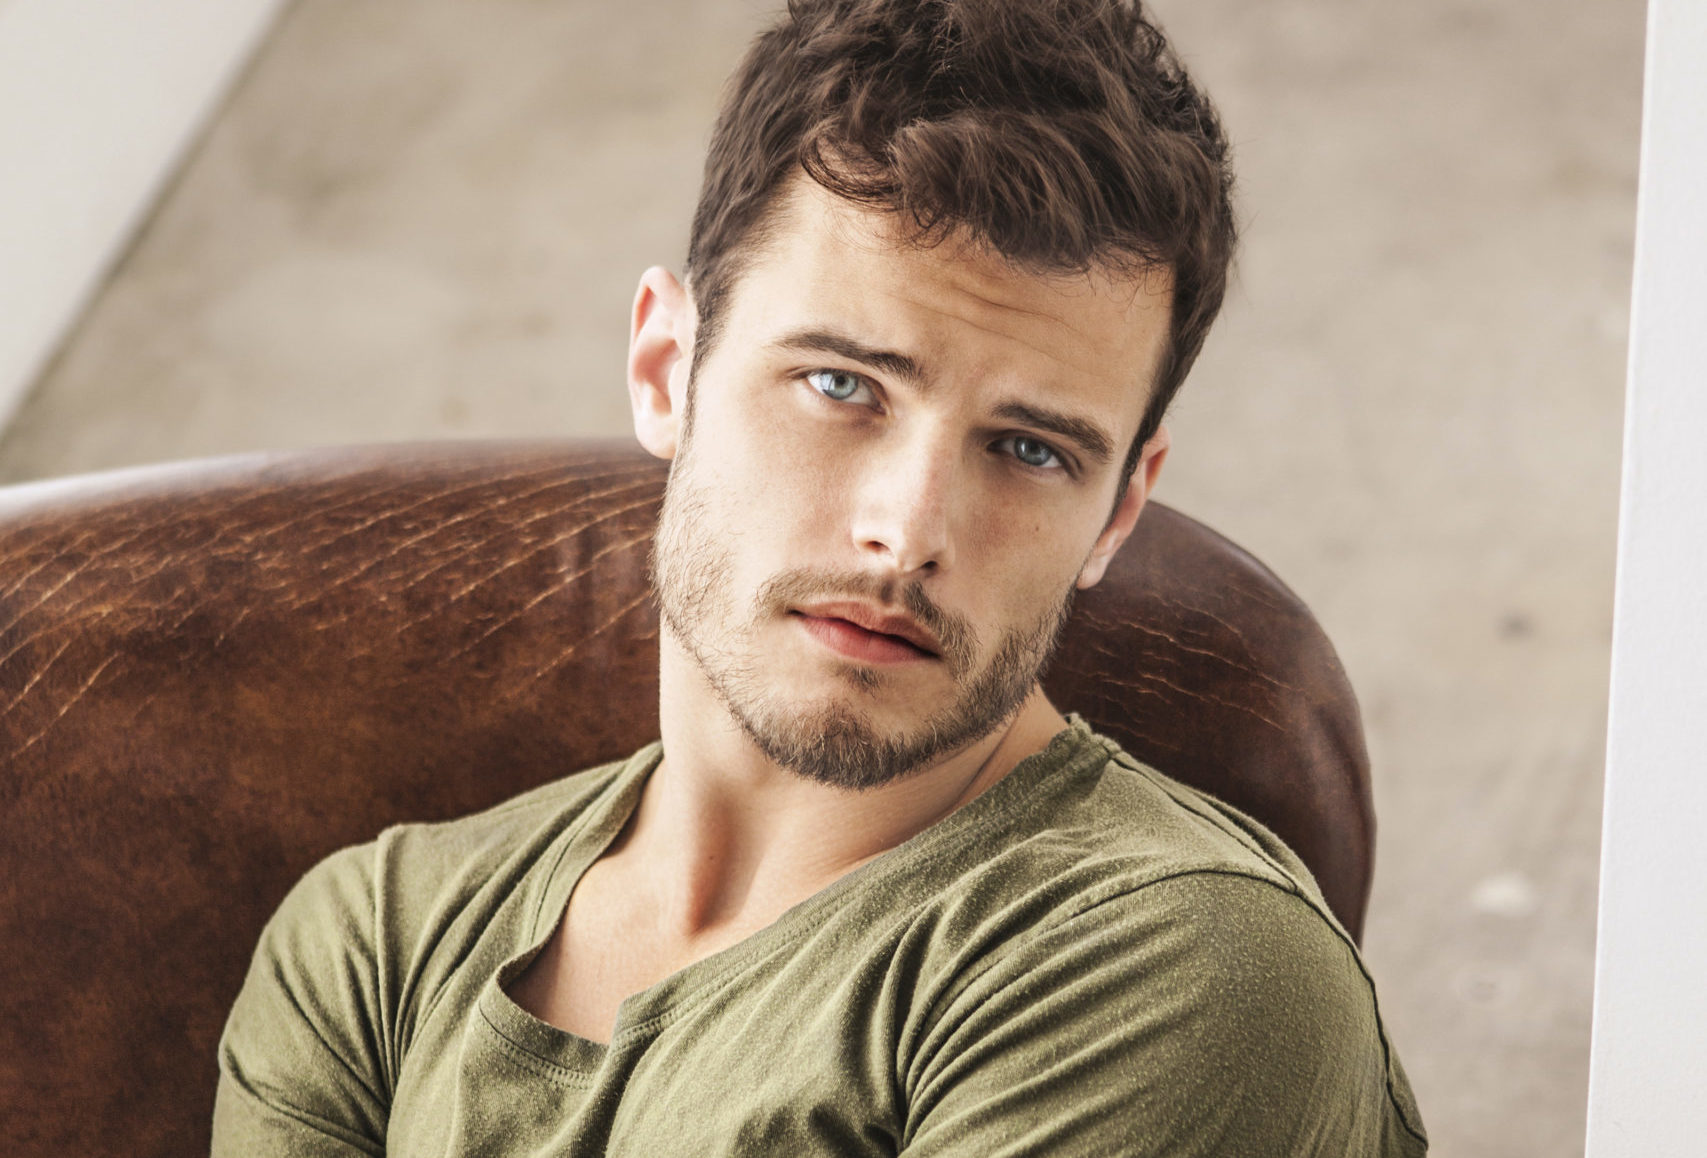 IMG 7010 hi scaled e1587664997266 - face-time, entertainment - Michael Mealor -  - Michael Mealor